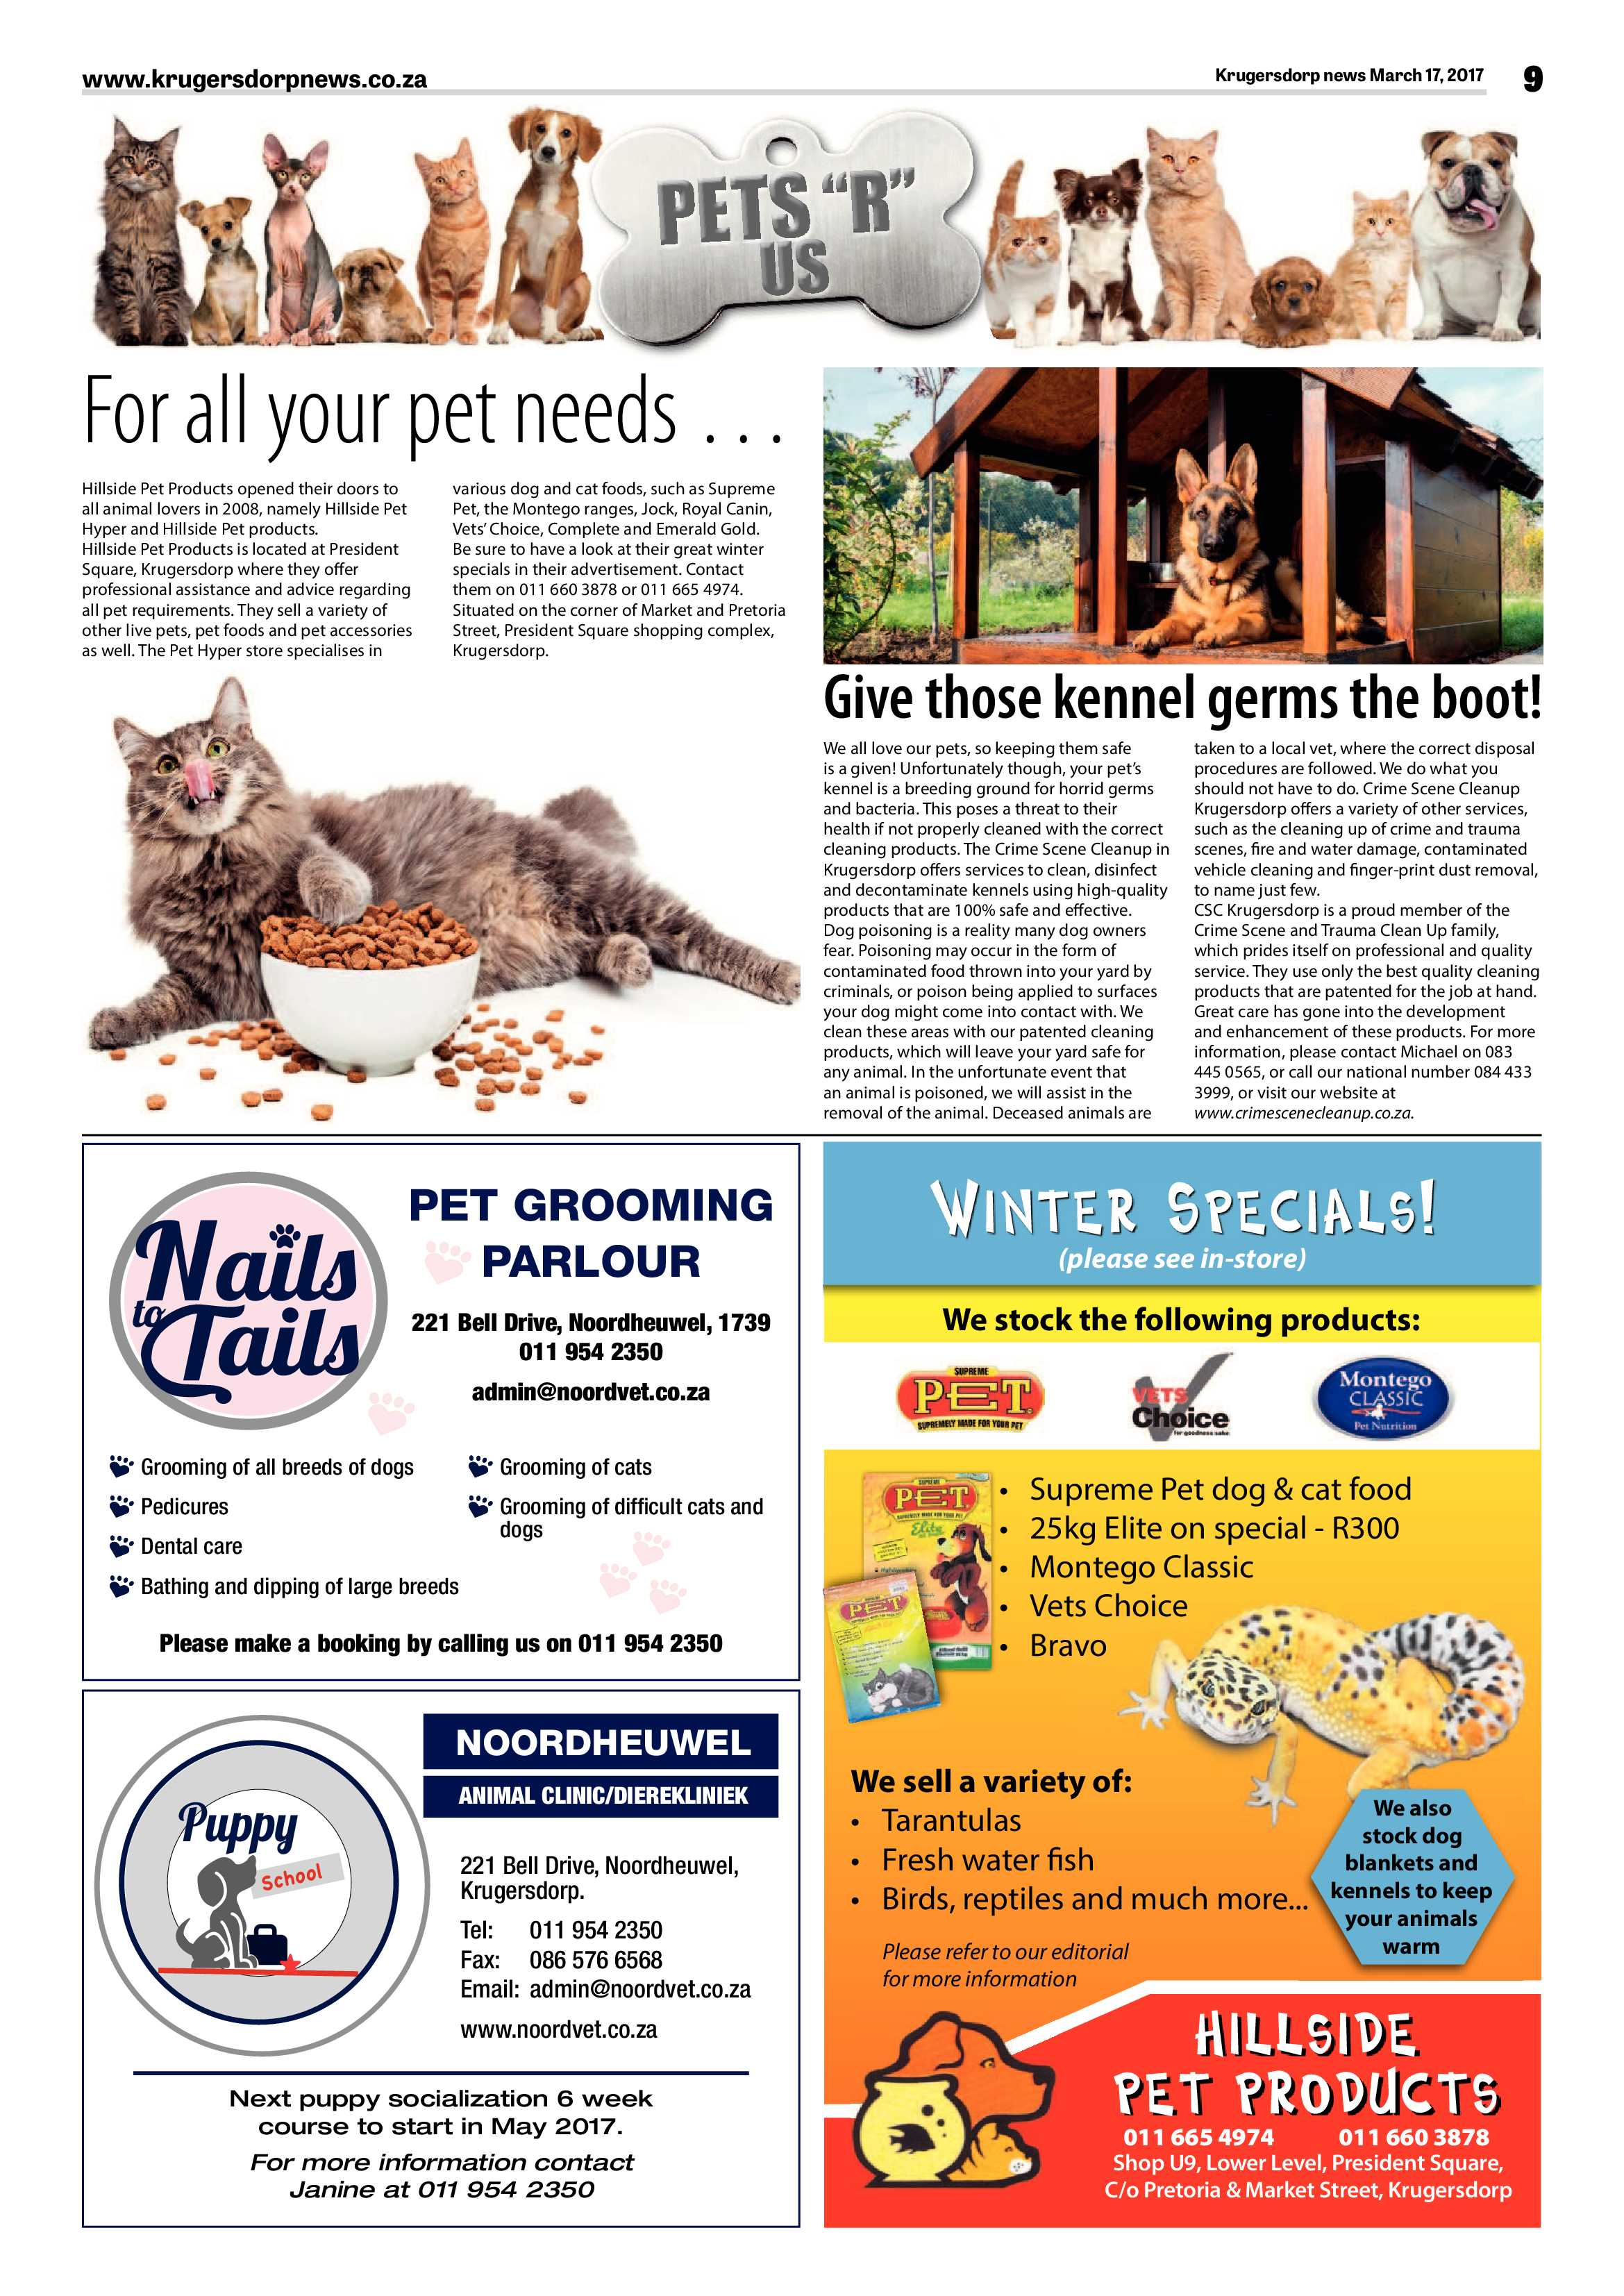 krugersdorp-news-17-march-2017-epapers-page-9